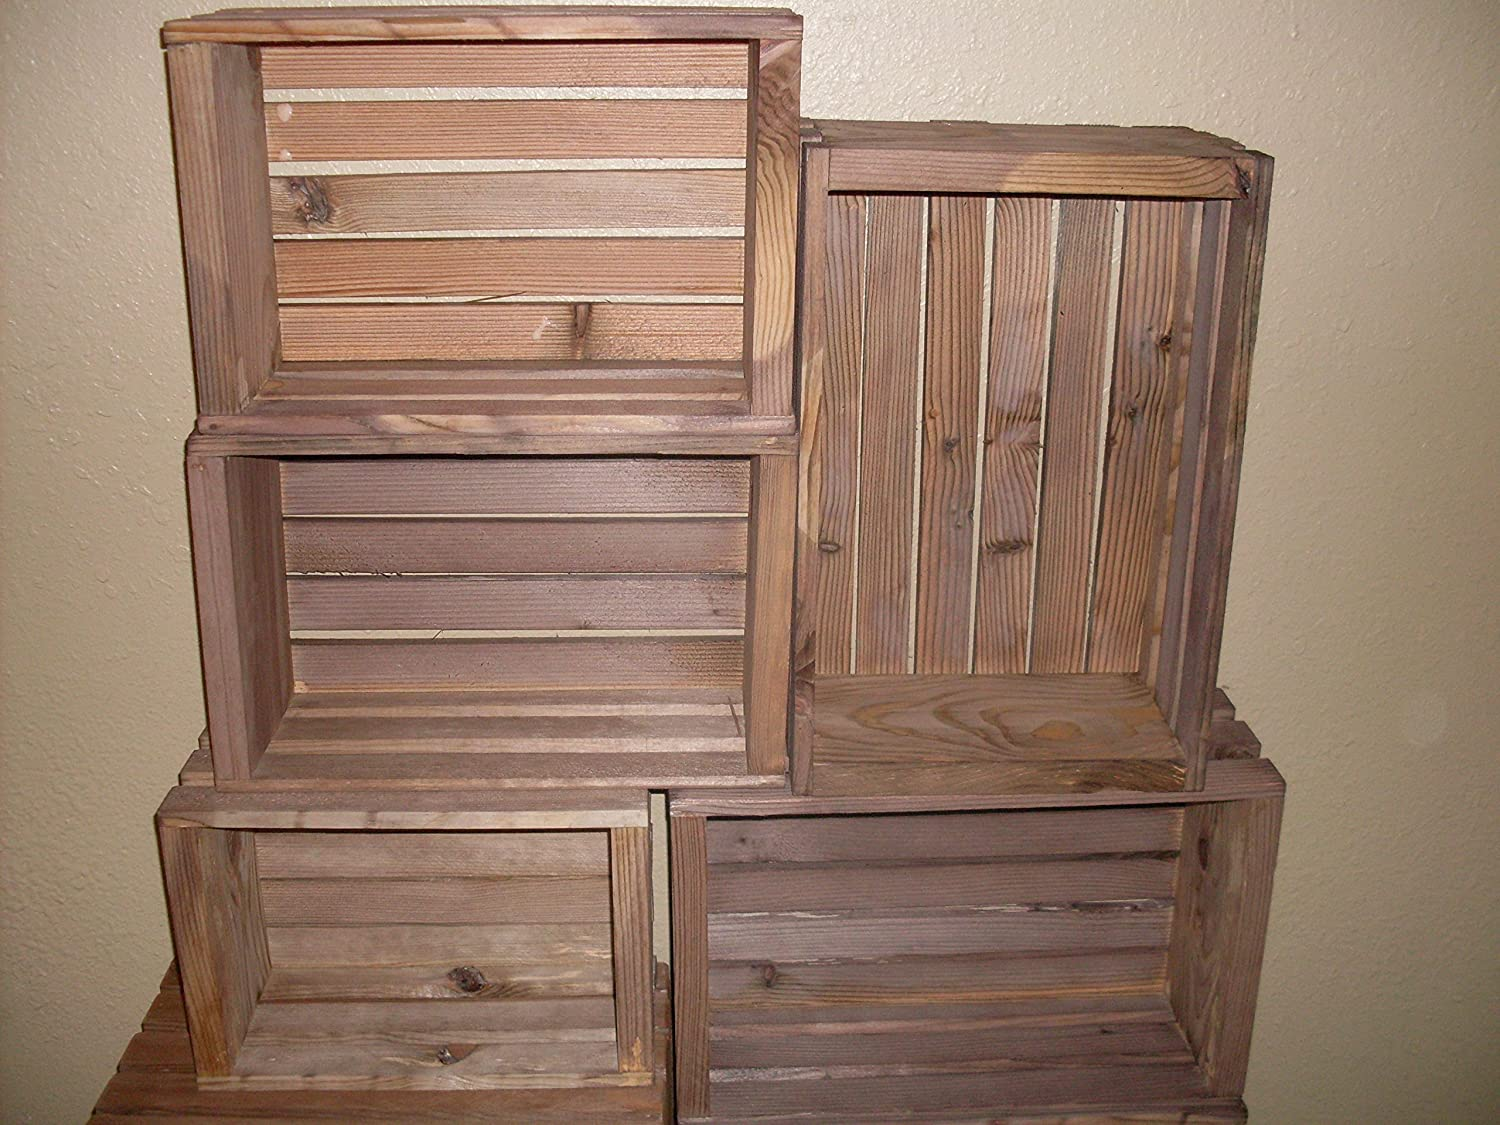 Ideas for a diy shelf for plants in containers for Where can i buy wooden milk crates